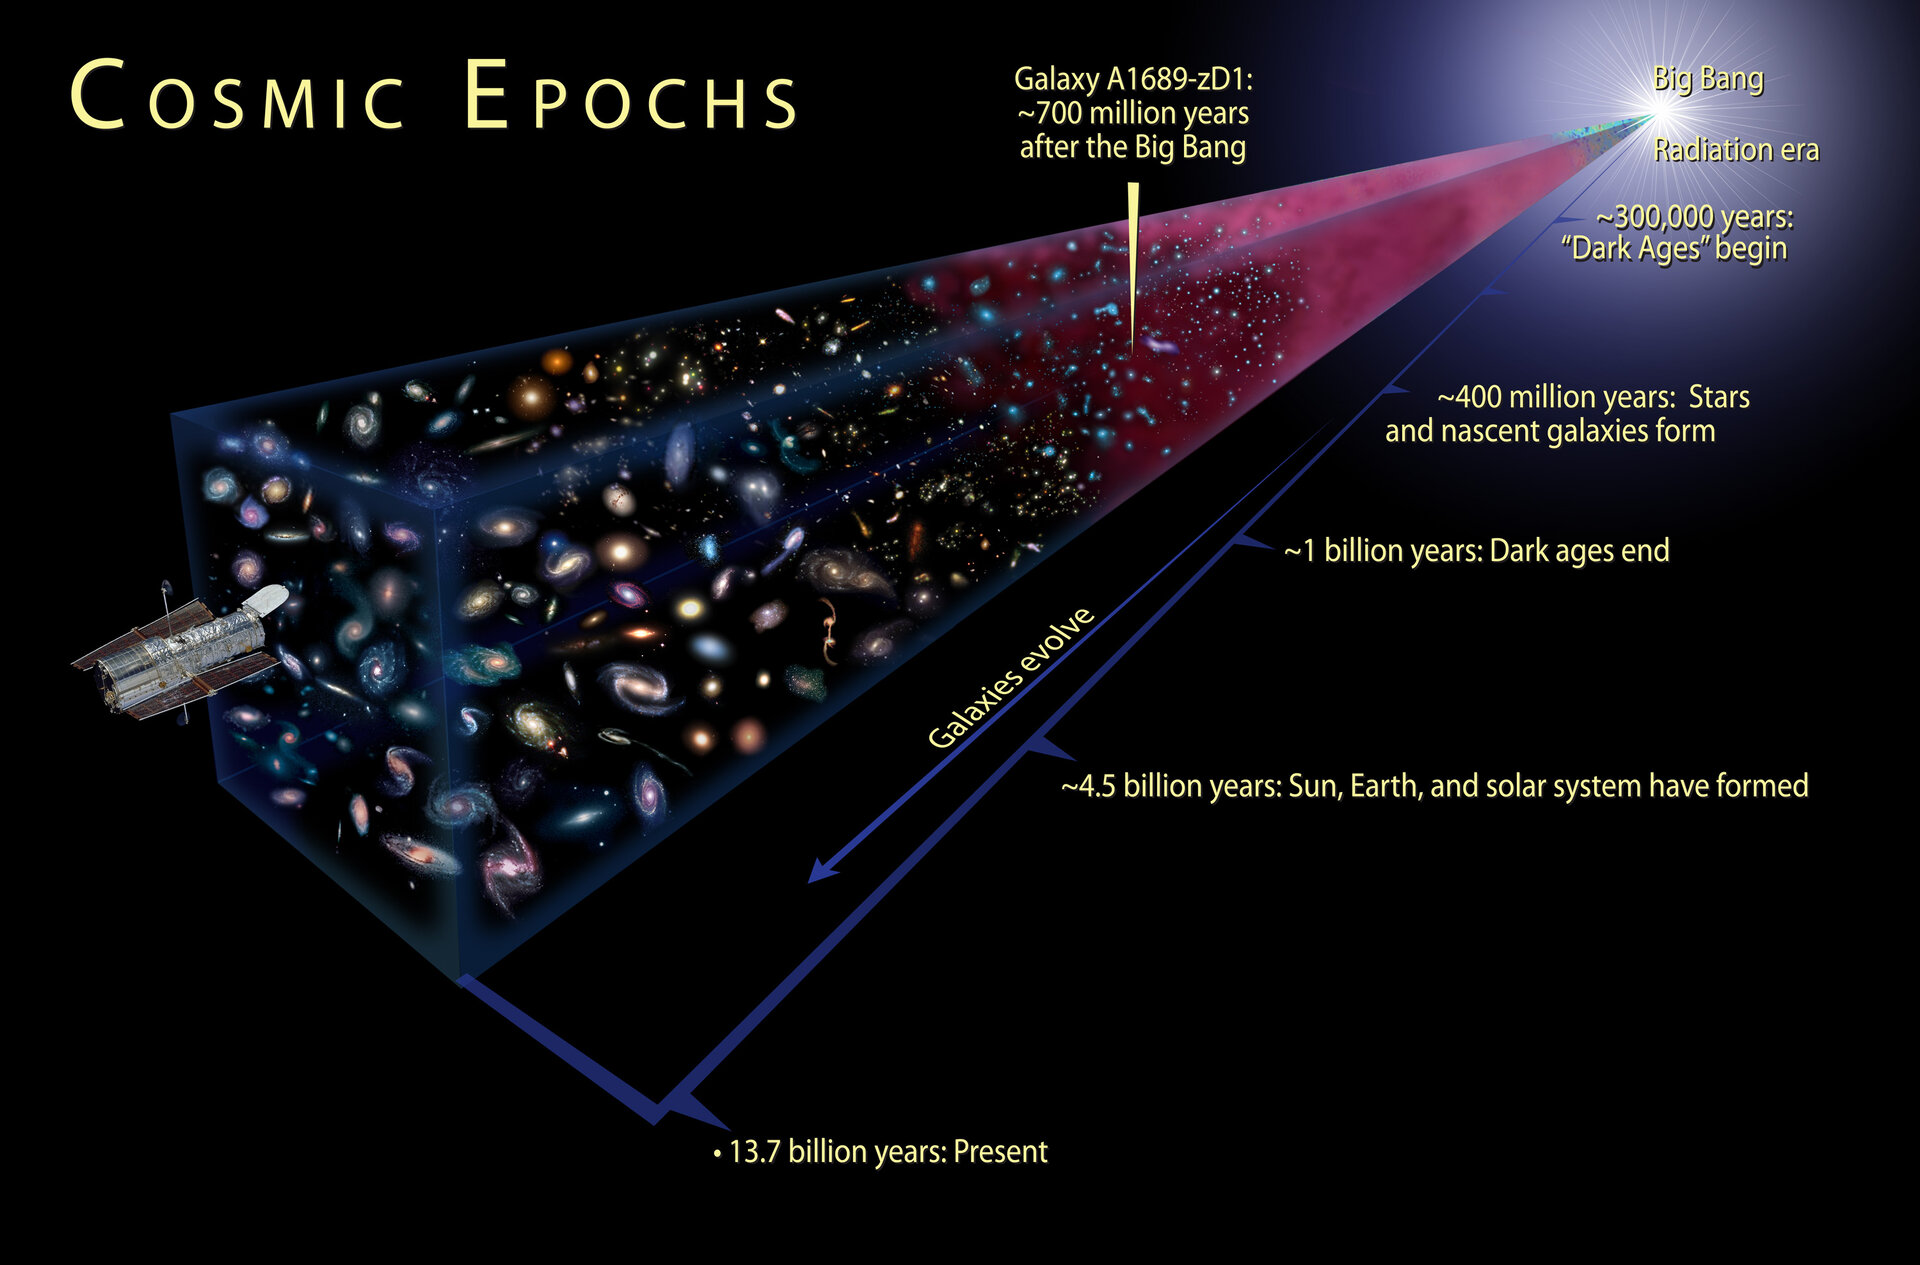 The cosmic epochs of the universe